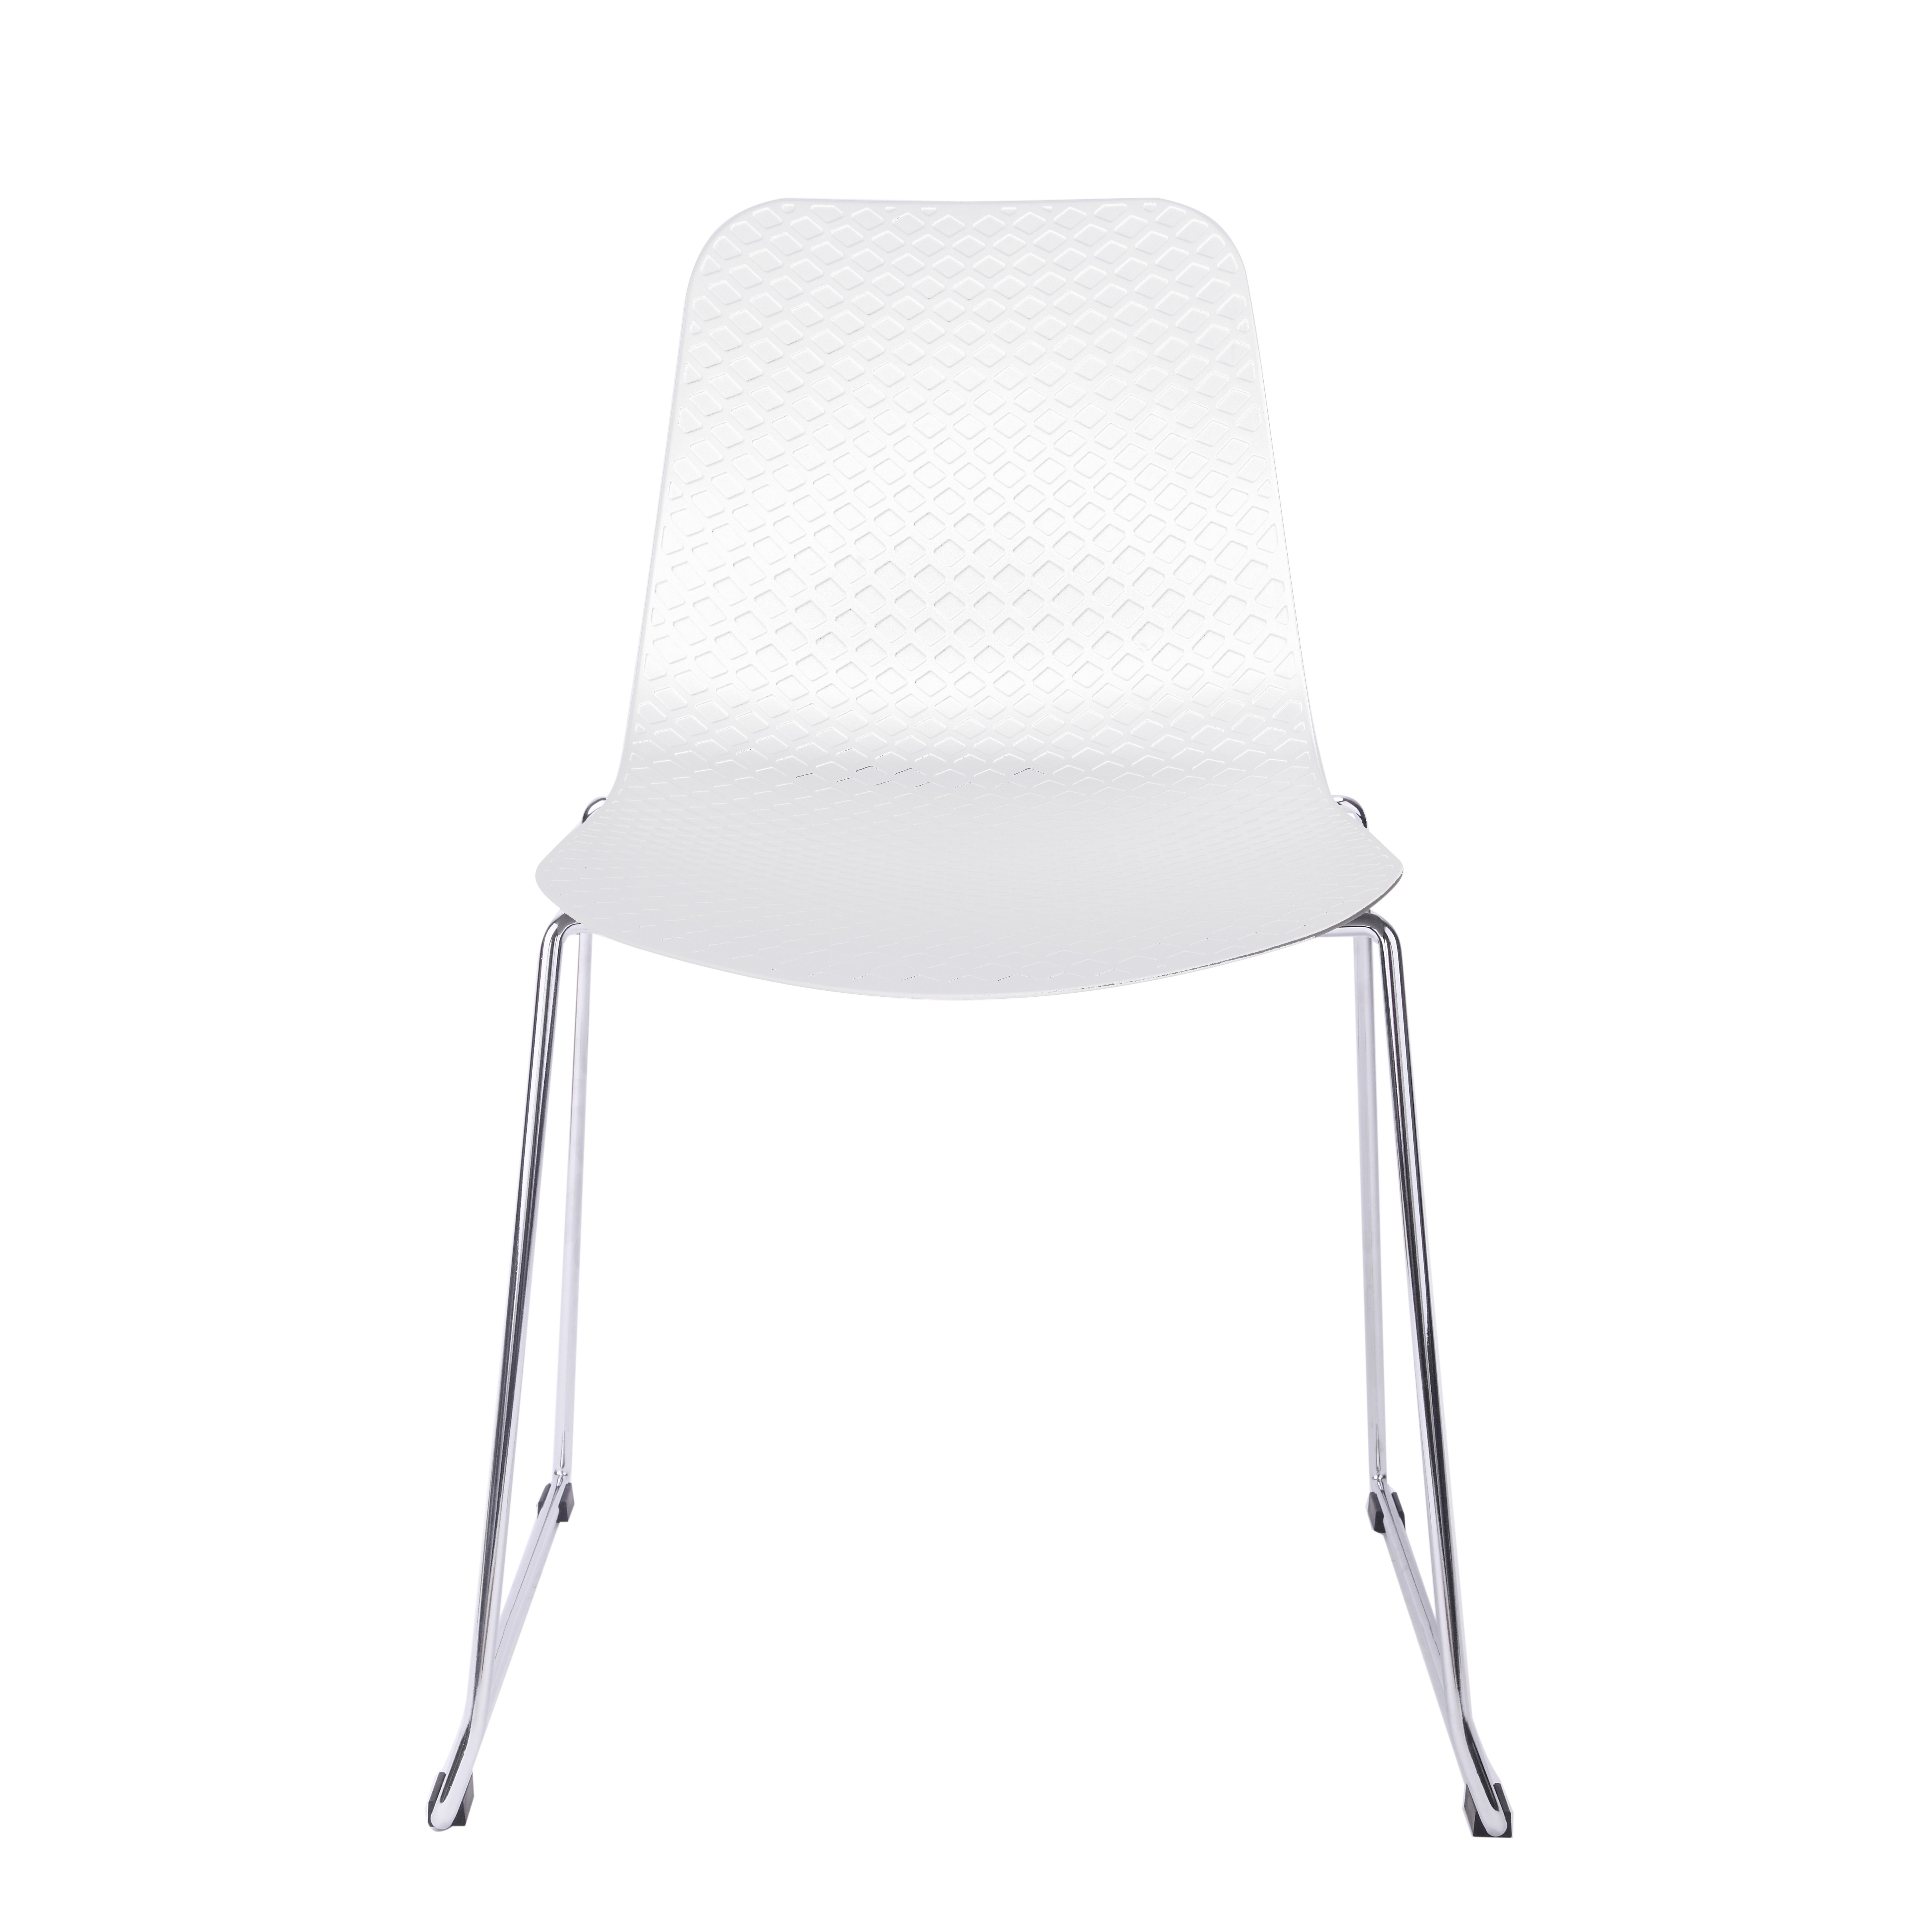 plastic chairs with steel legs dwr salt chair hebe series white dining shell side molded